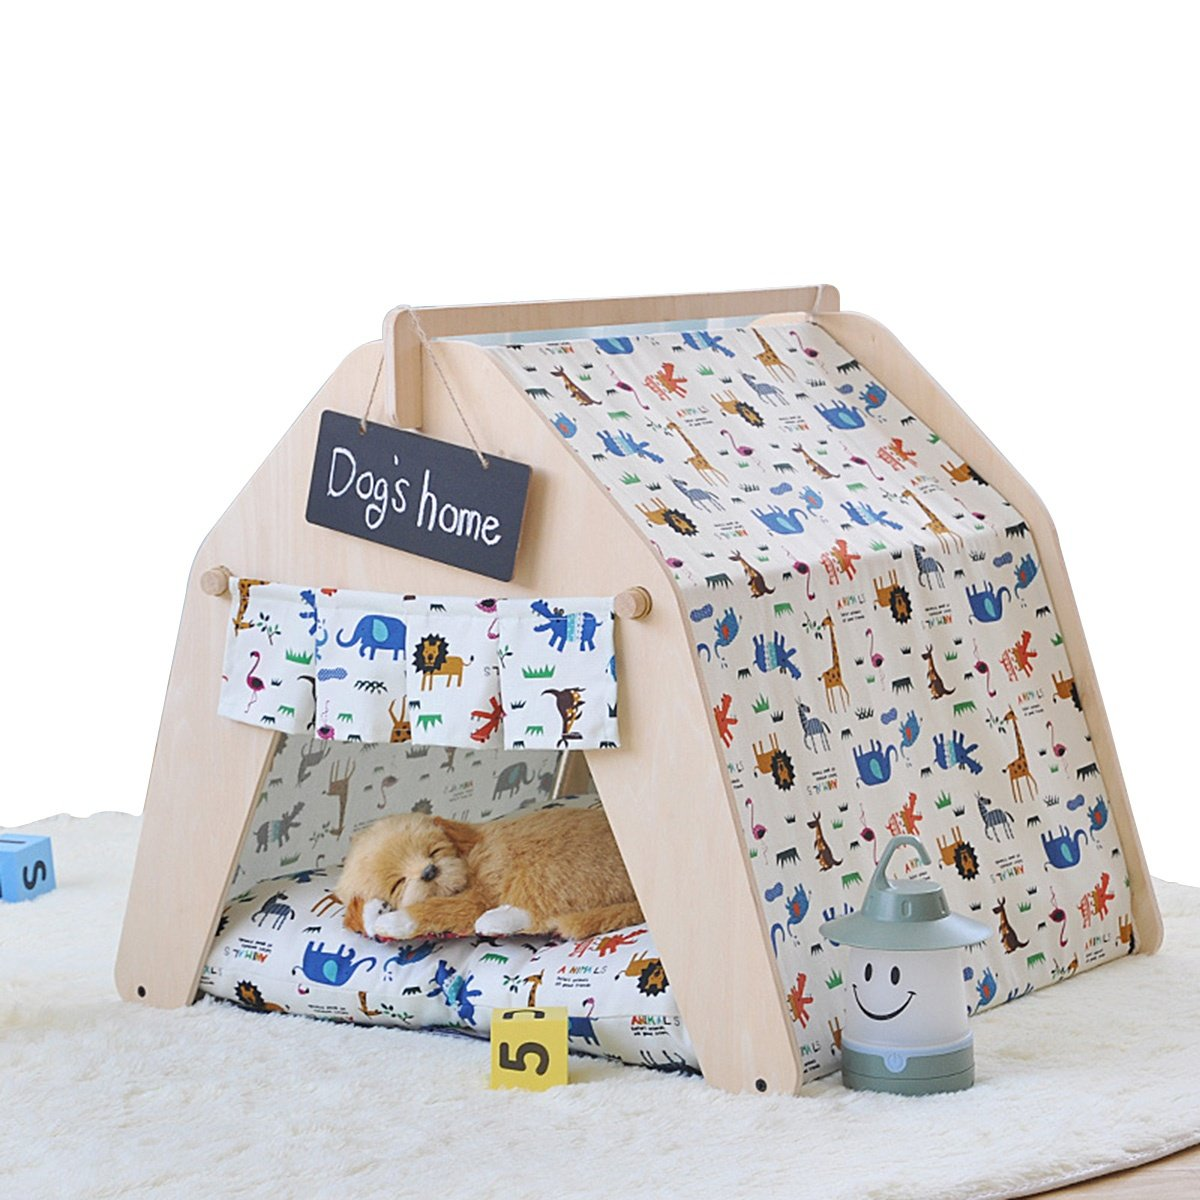 L shanzhizui DIY pet house Pet tent Dog house Cat nest Dog bed Spring and summer Autumn And Winter Four seasons available Removable and washable, L